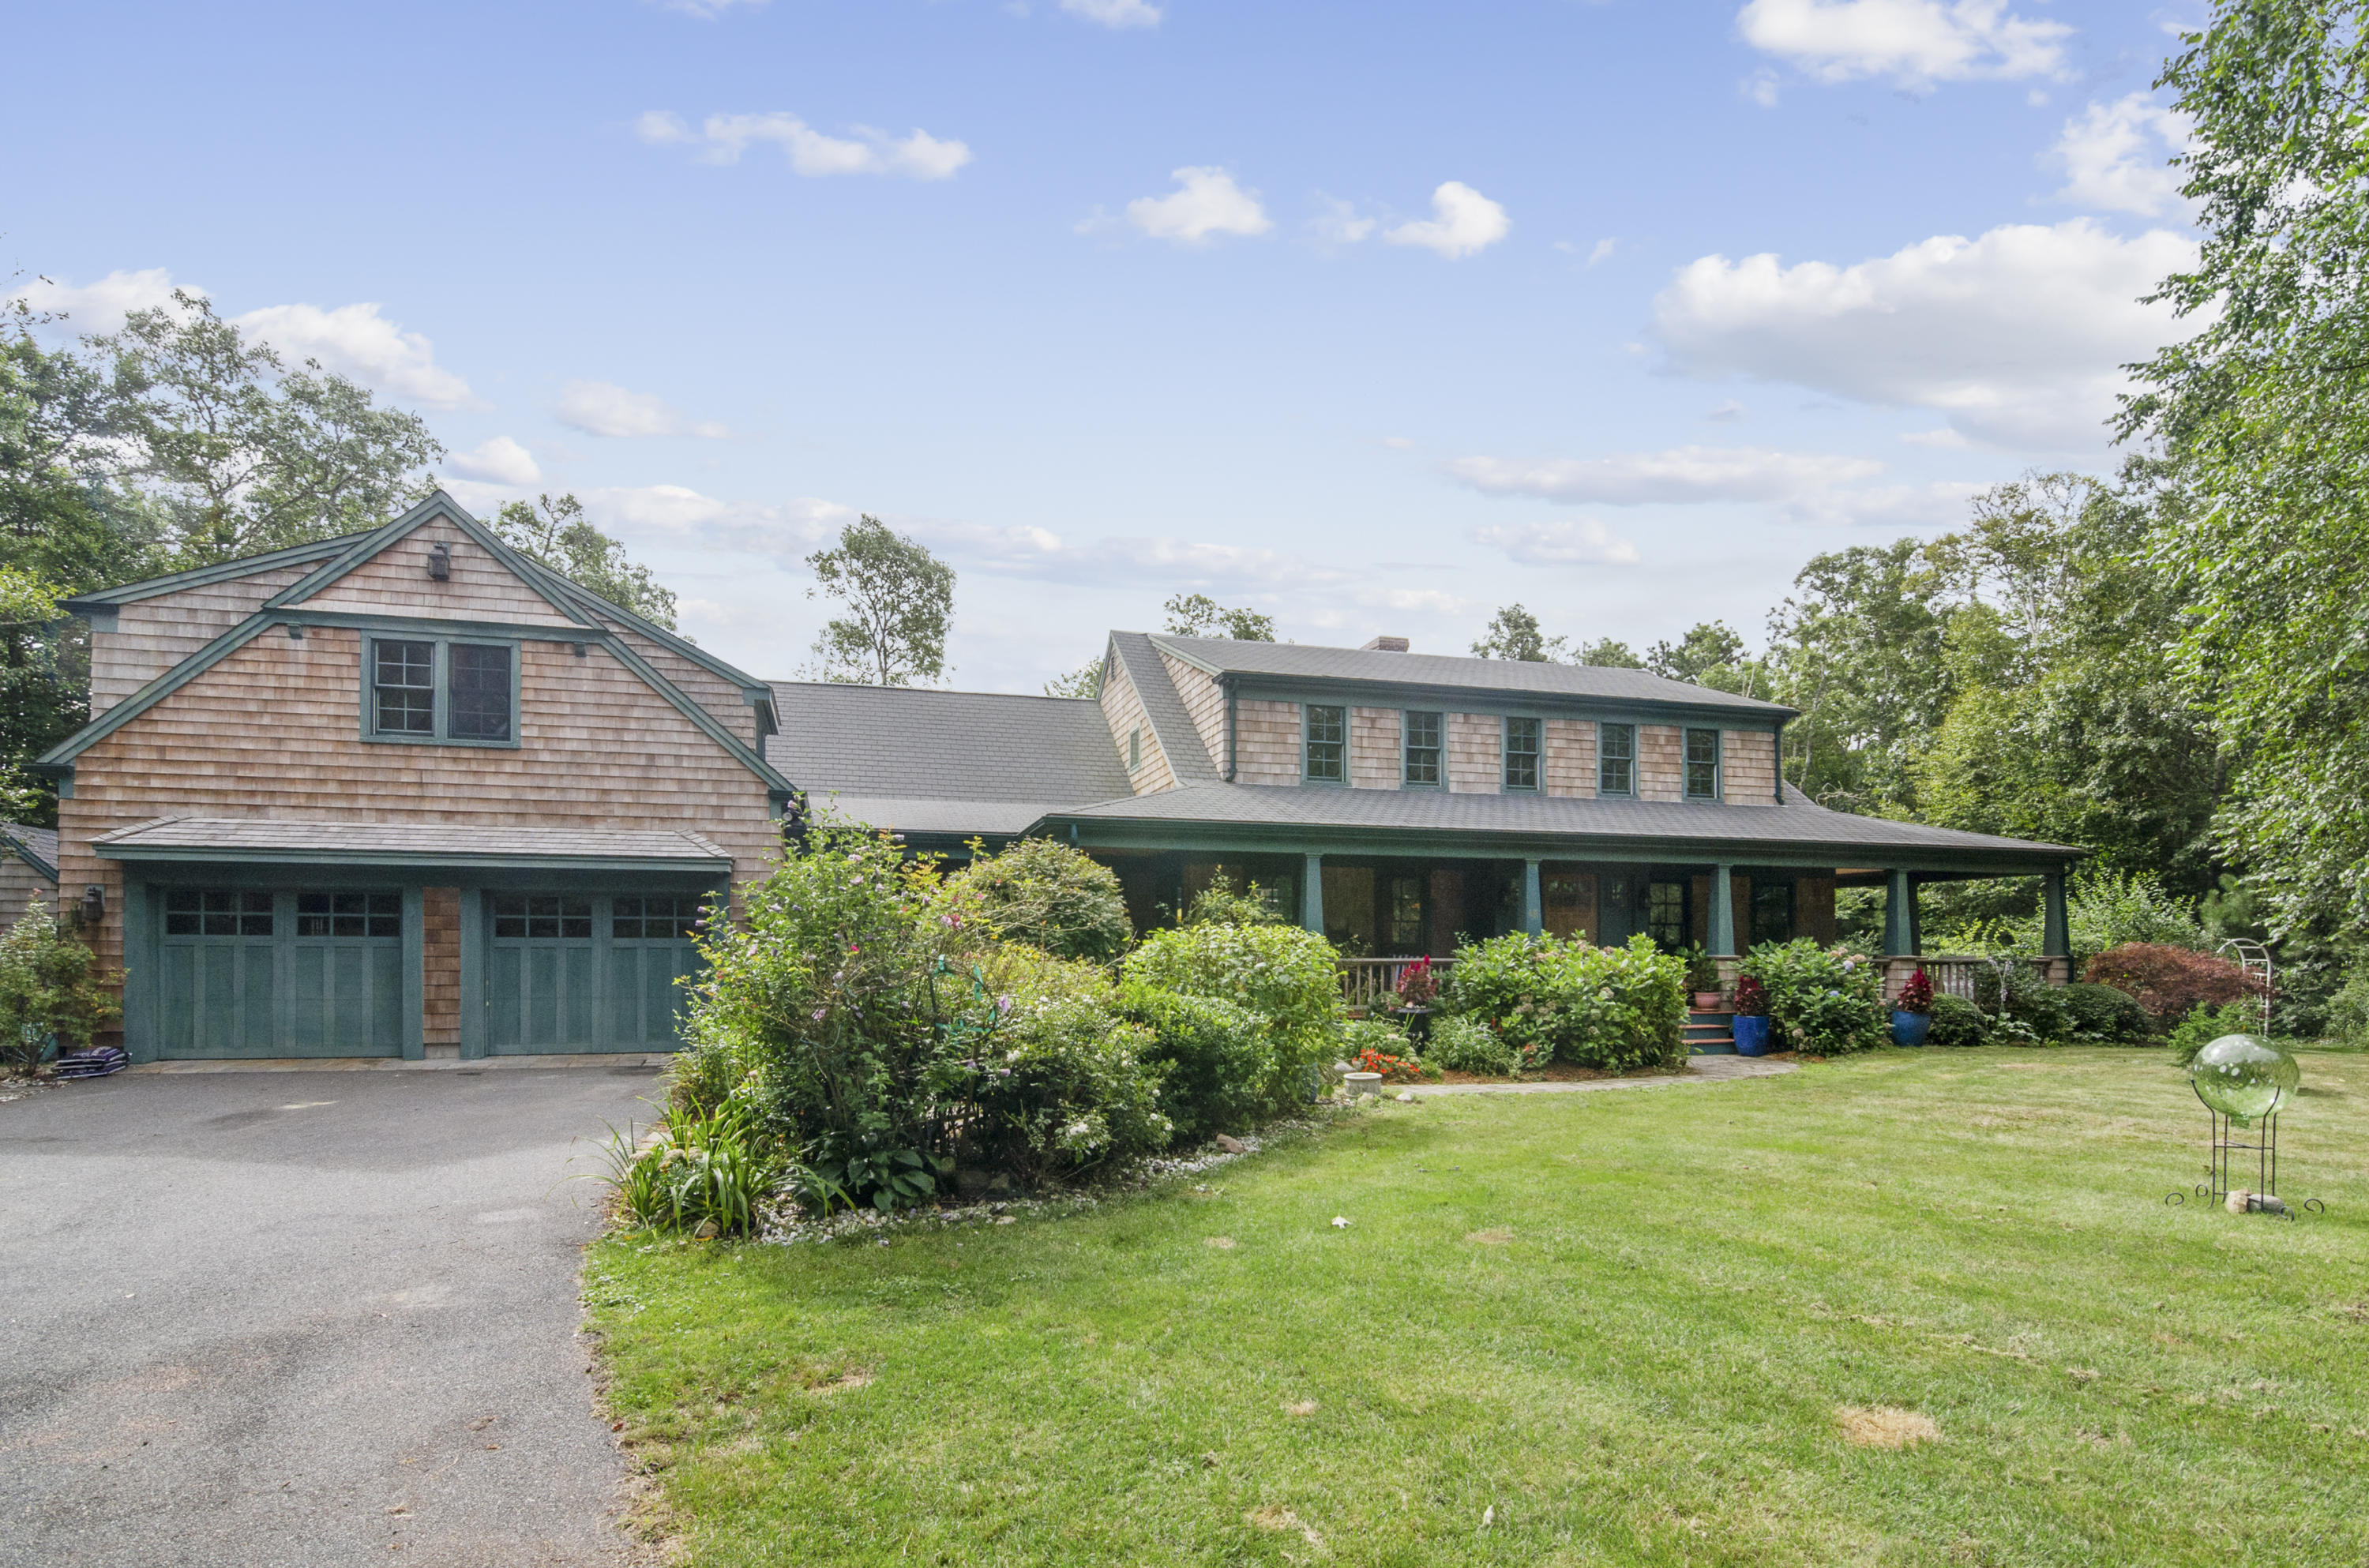 81 whidah way brewster ma 02631